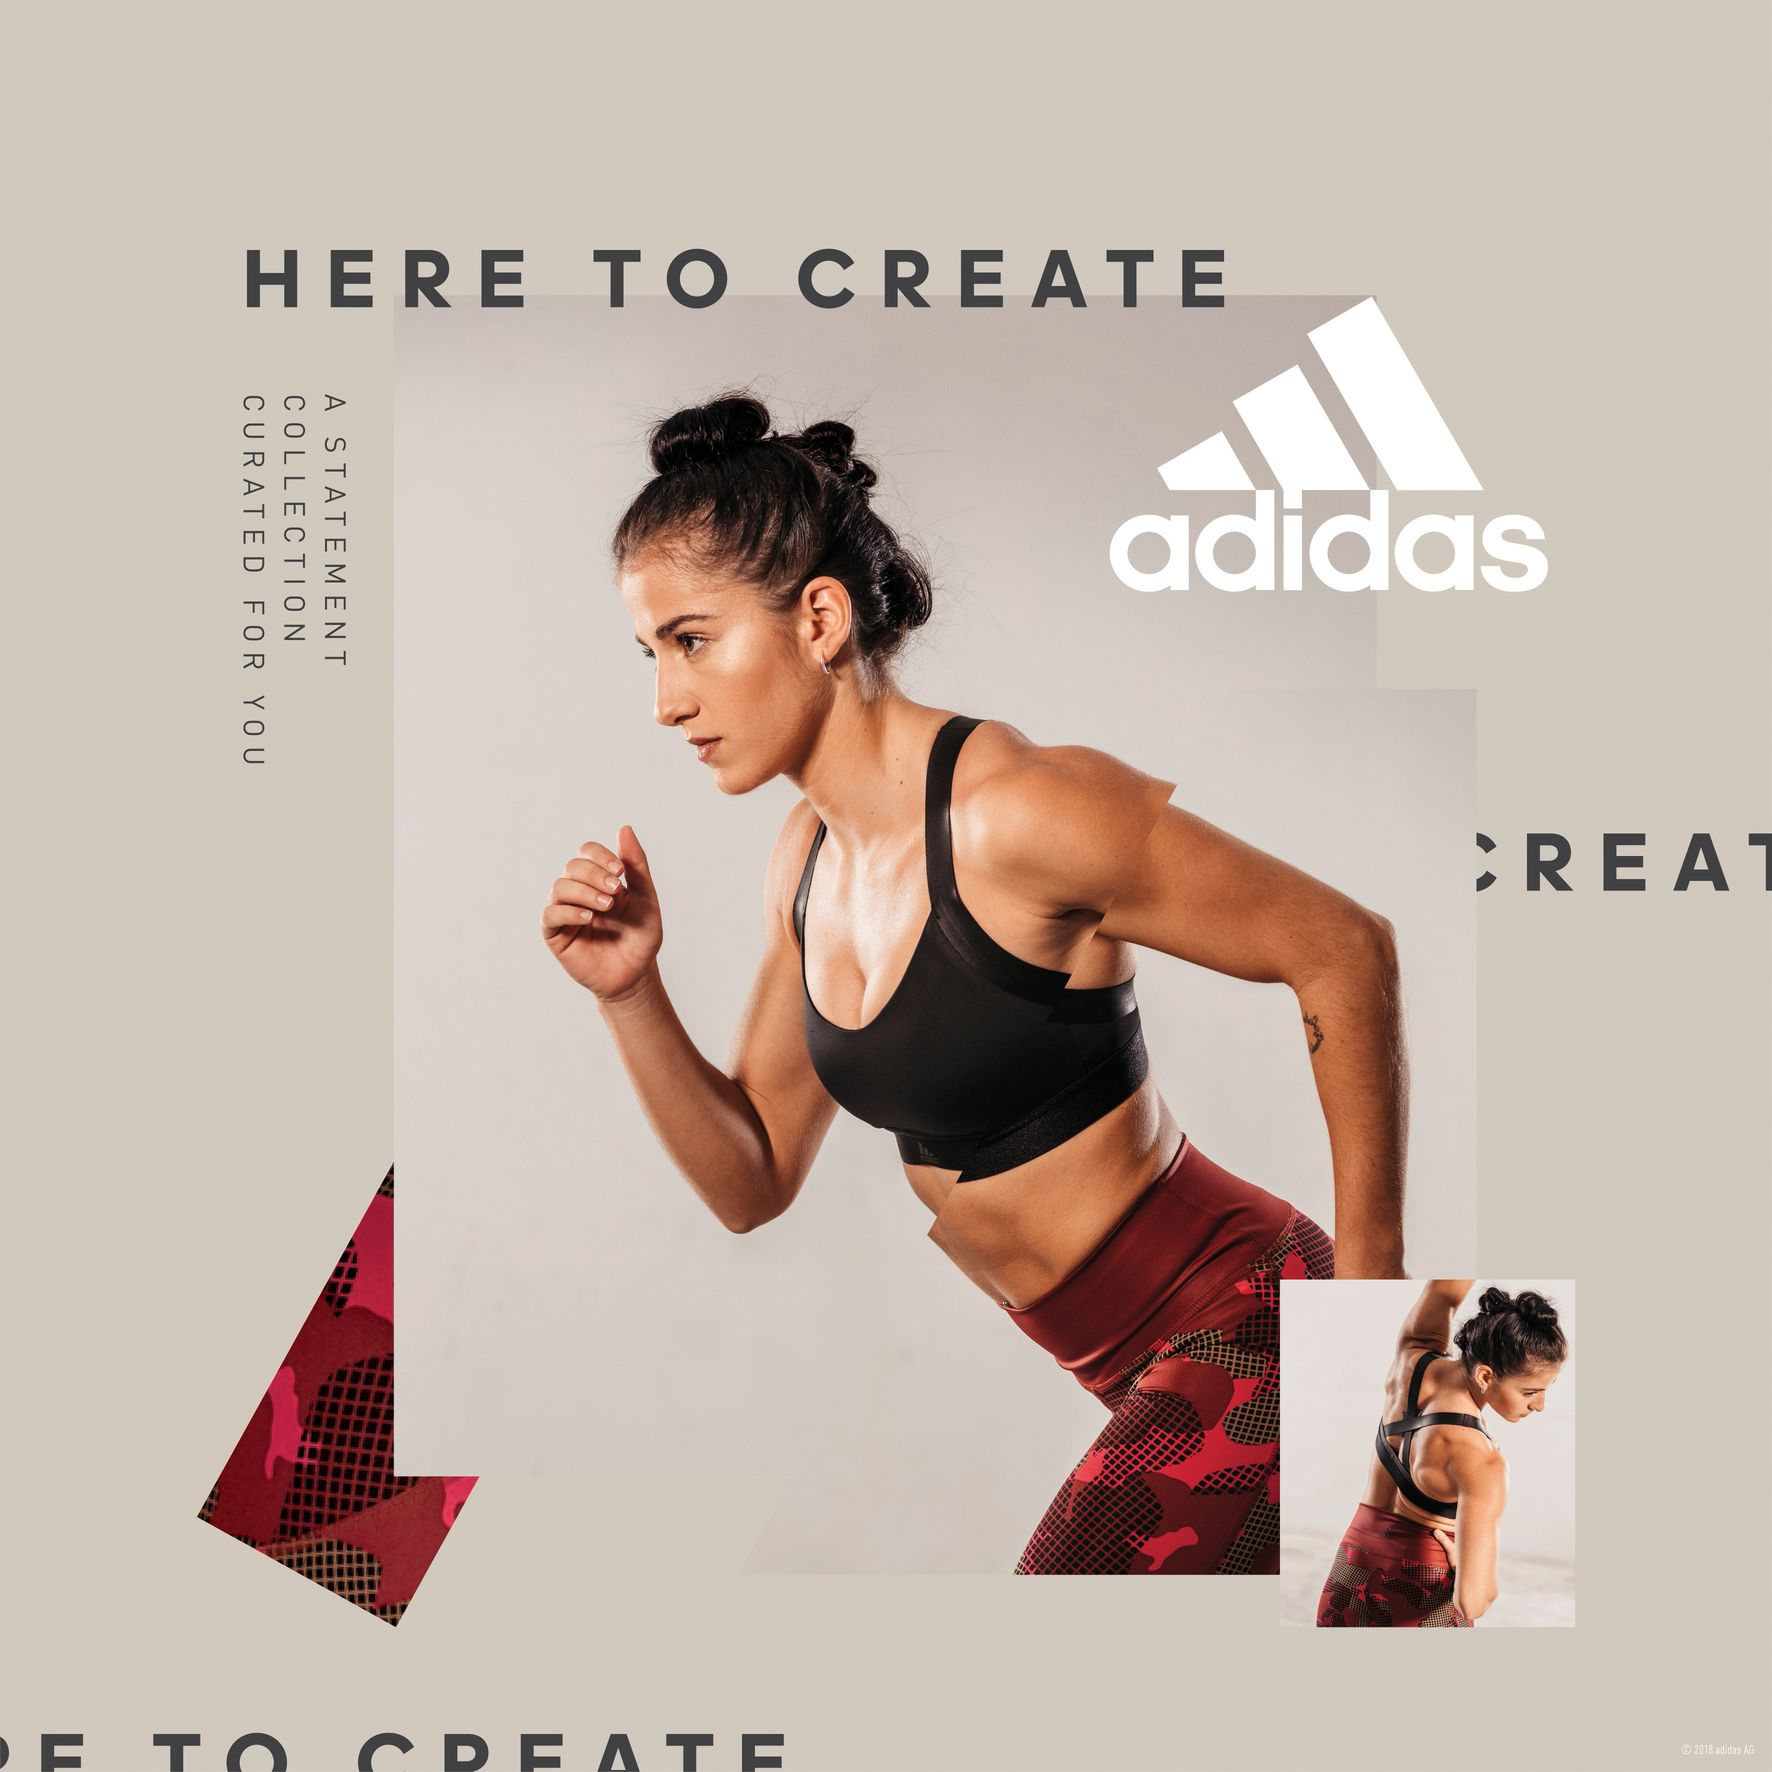 Adidas Women Statement Collection - Hara Gidarakou